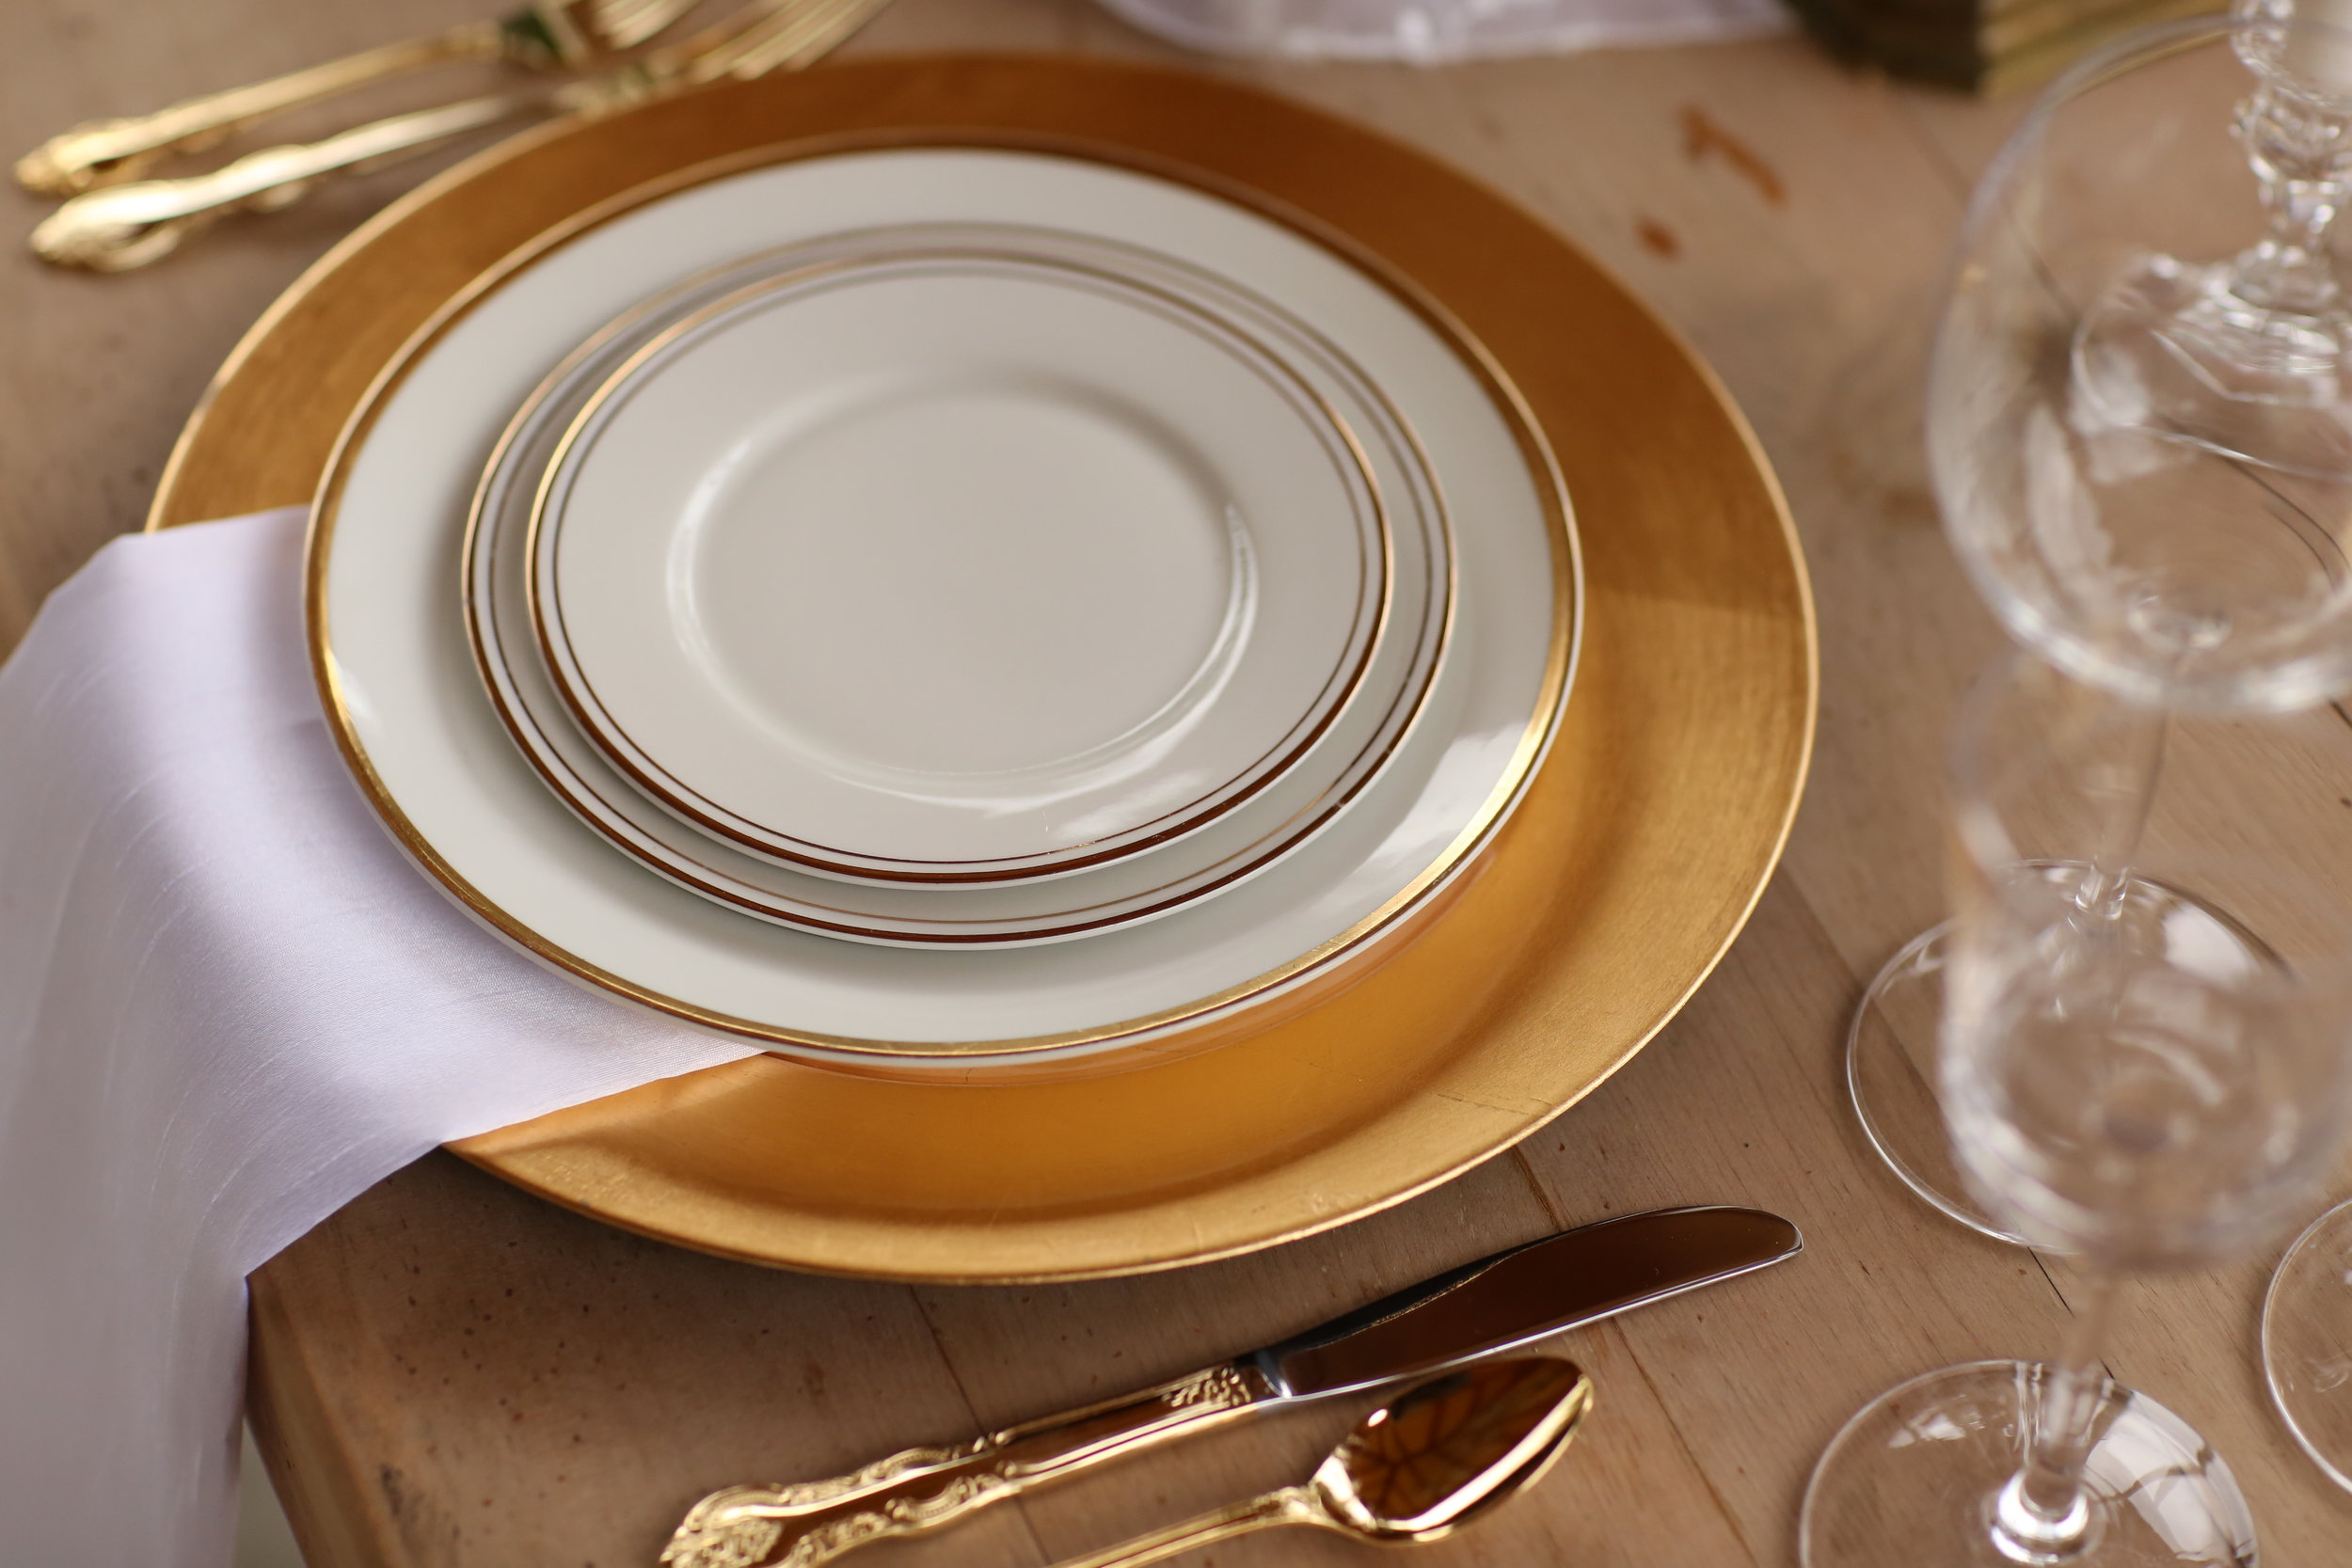 Gold charger plate with gold rimmed china, gold silverware, and vintage crystal goblets set for a wedding table. Vintage rentals from Birdie in a Barn.